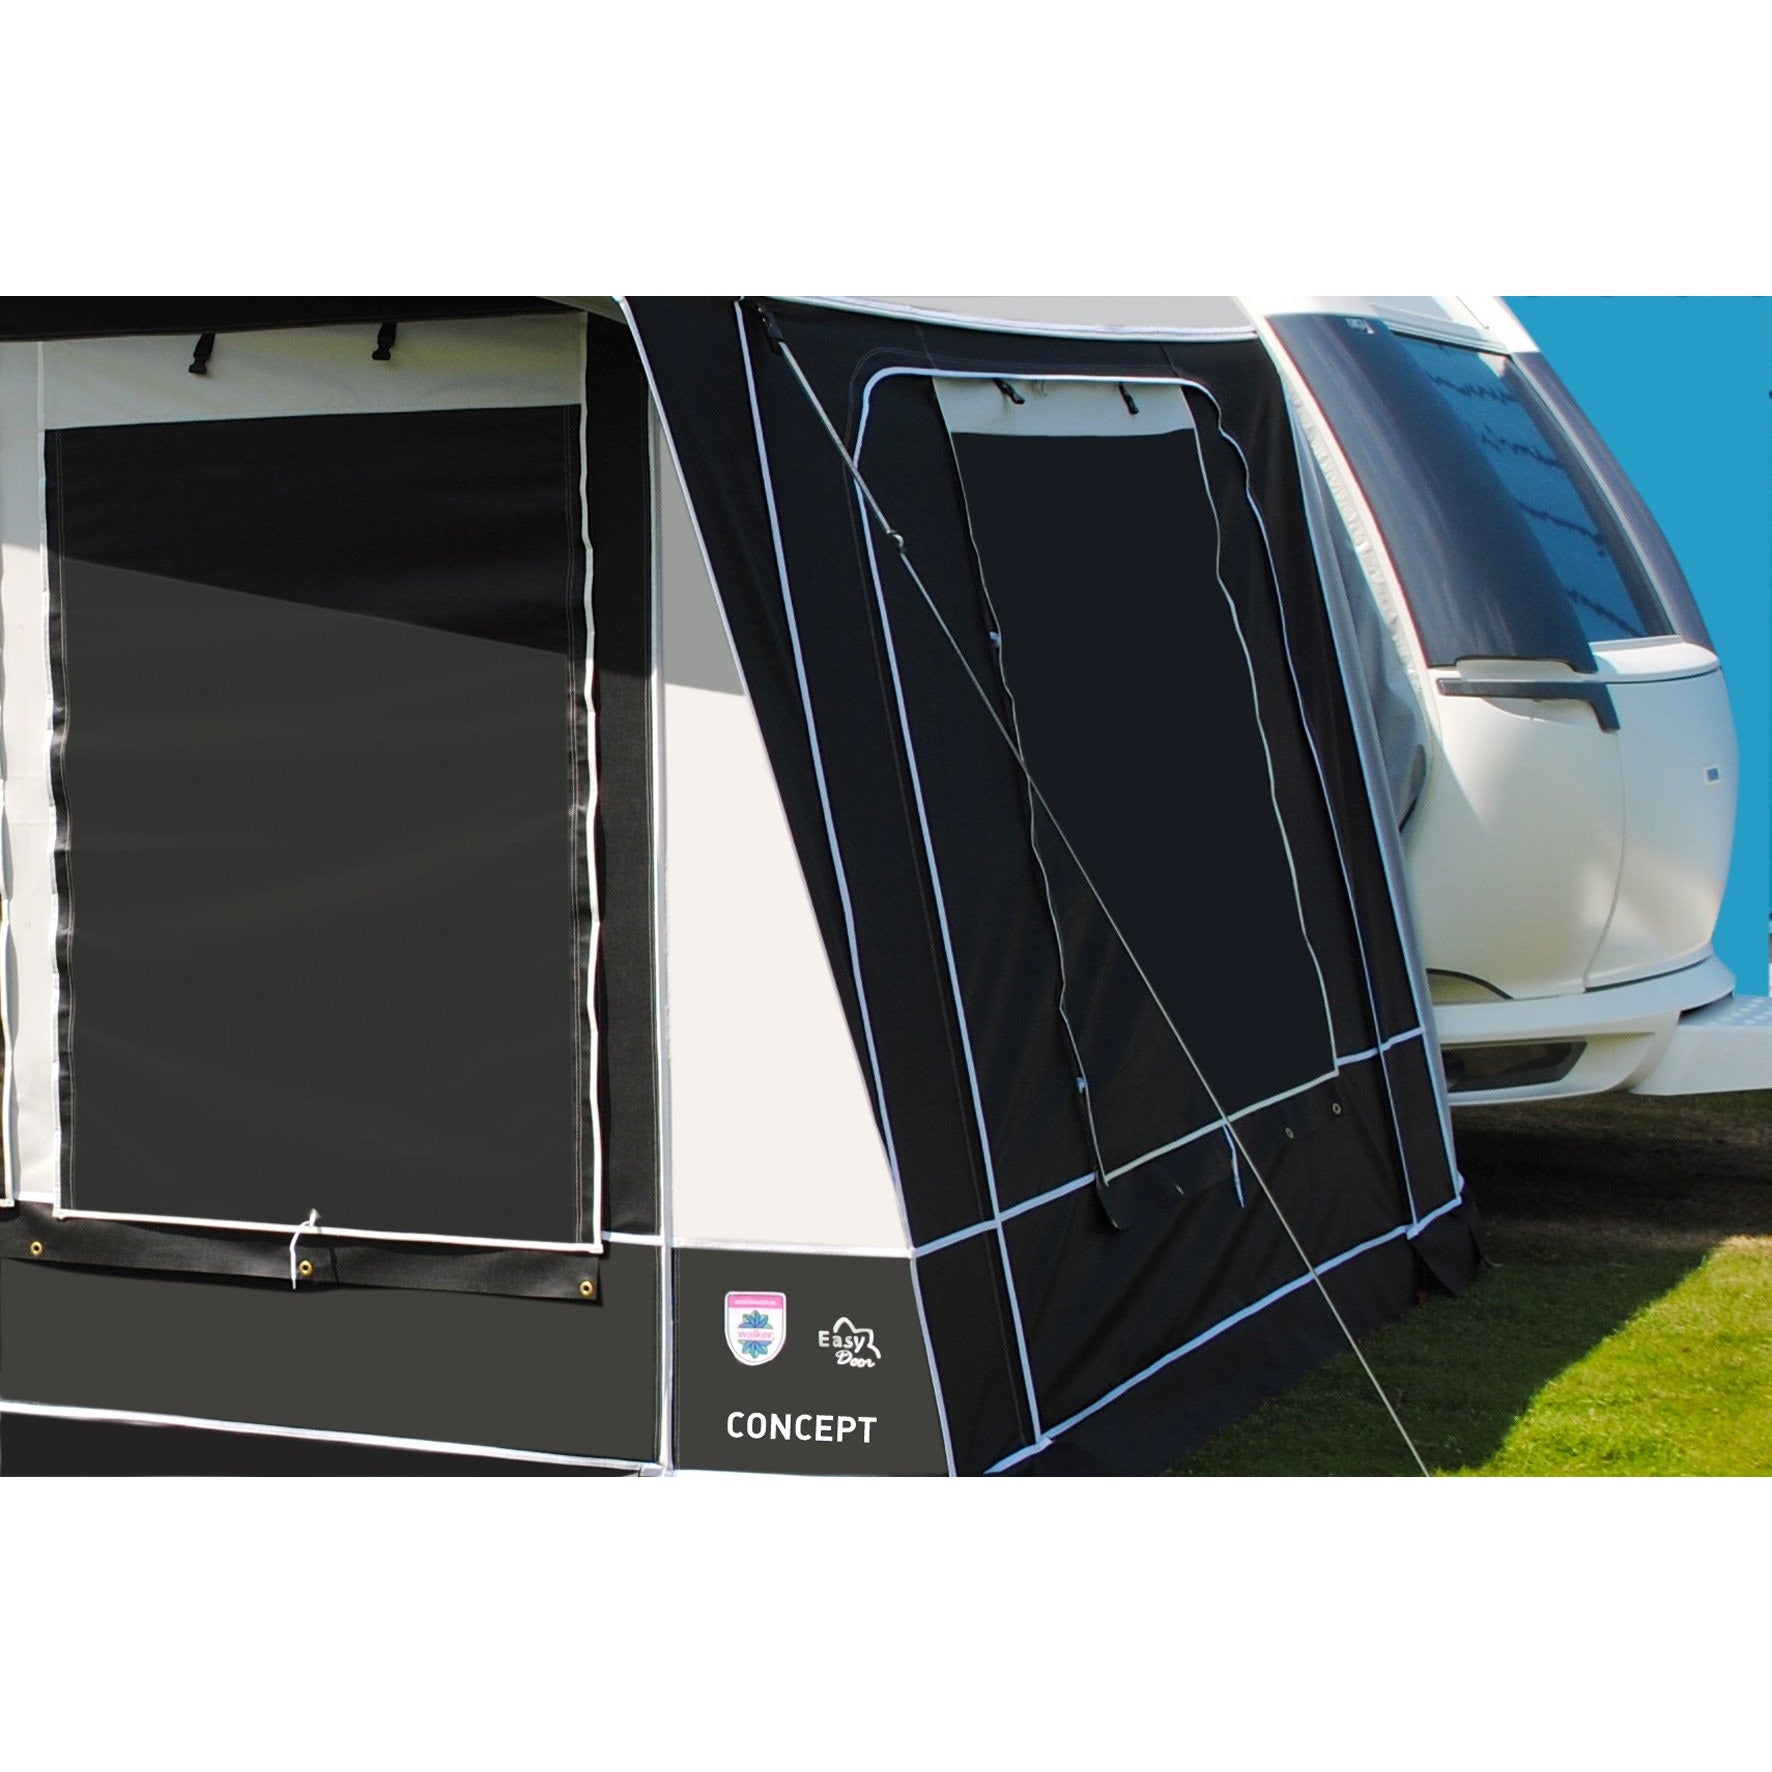 Walker Concept 240 Full Caravan Awning Traditional 2019